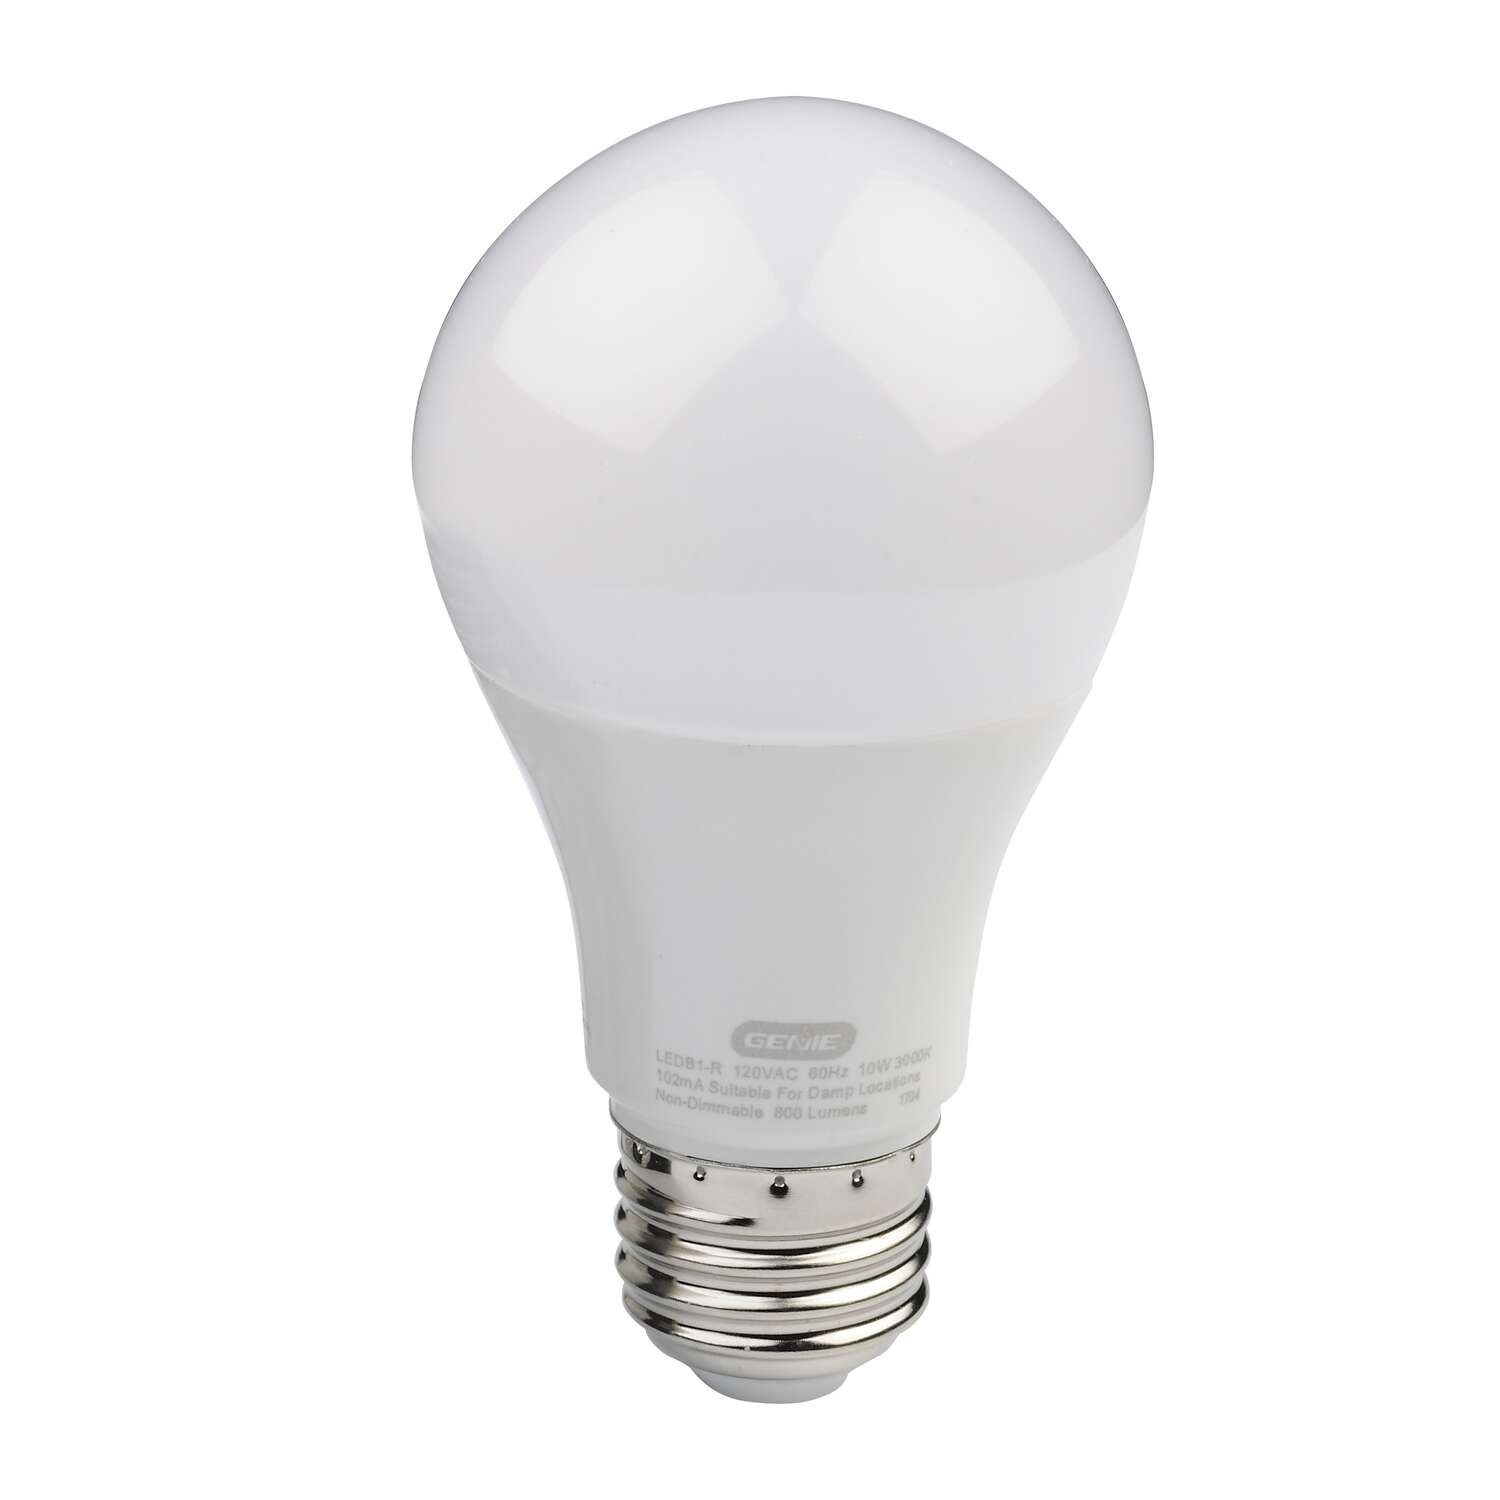 Genie  Title 20 Approved  A19  E26 (Medium)  LED Garage Door Bulb  Warm White  60 Watt Equivalence 1